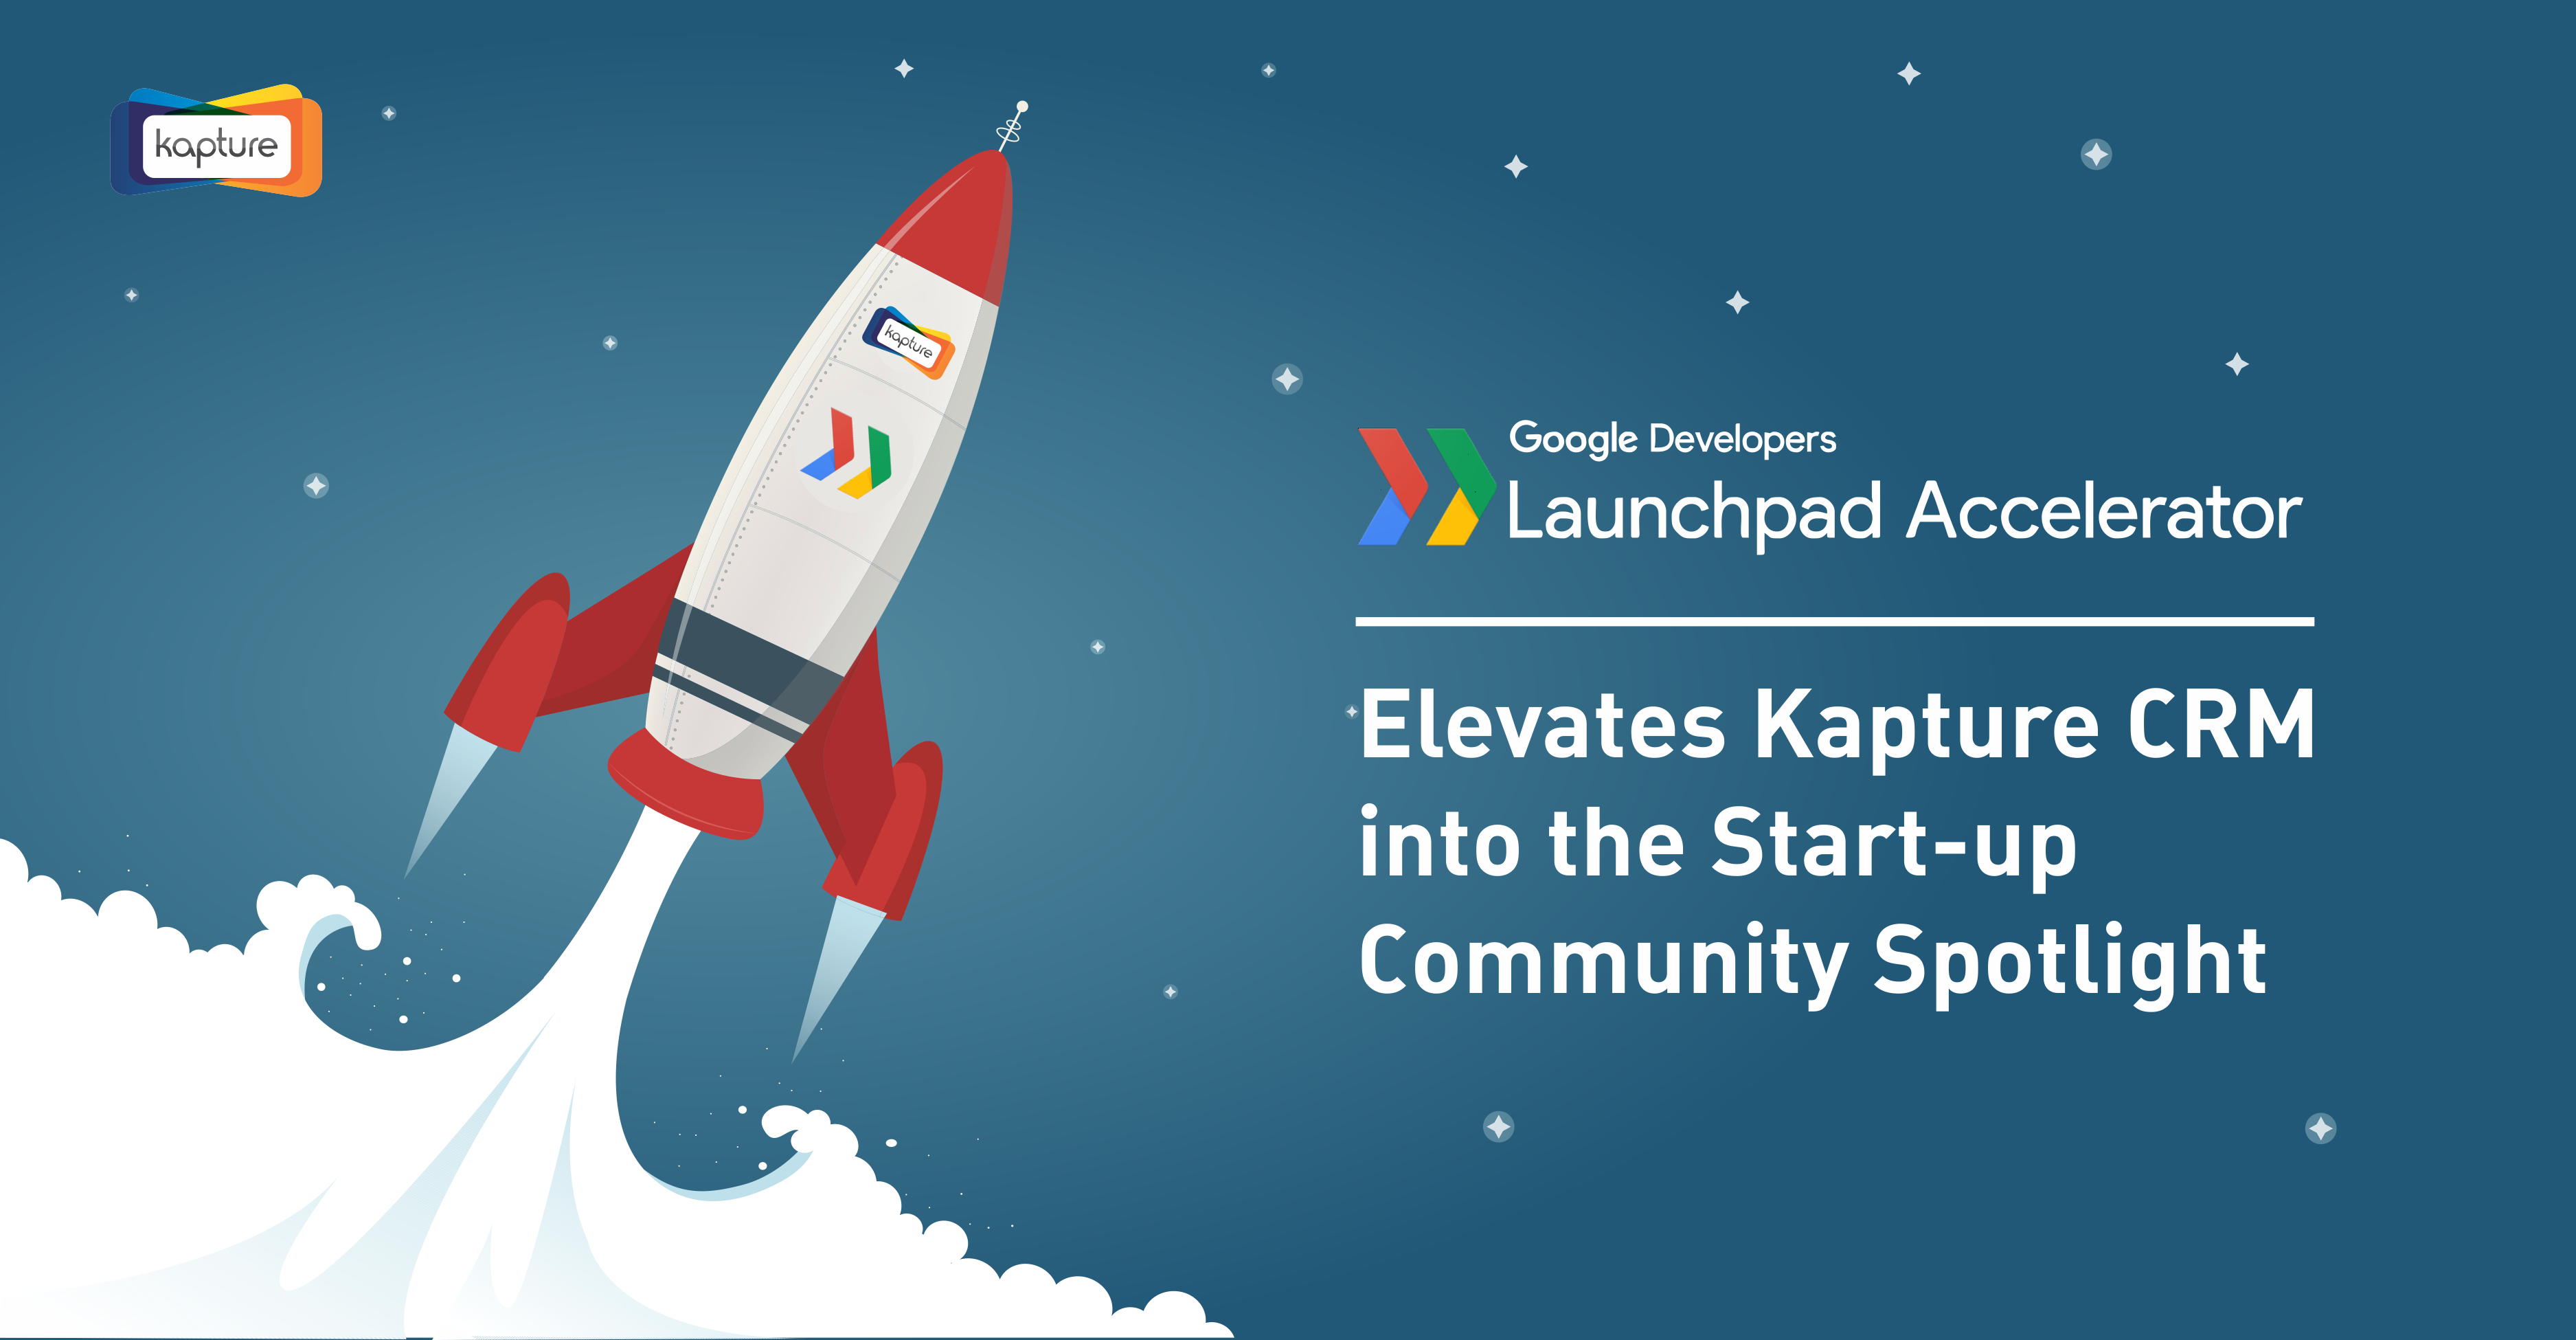 Kapture CRM Software Google Launchpad Accelerator